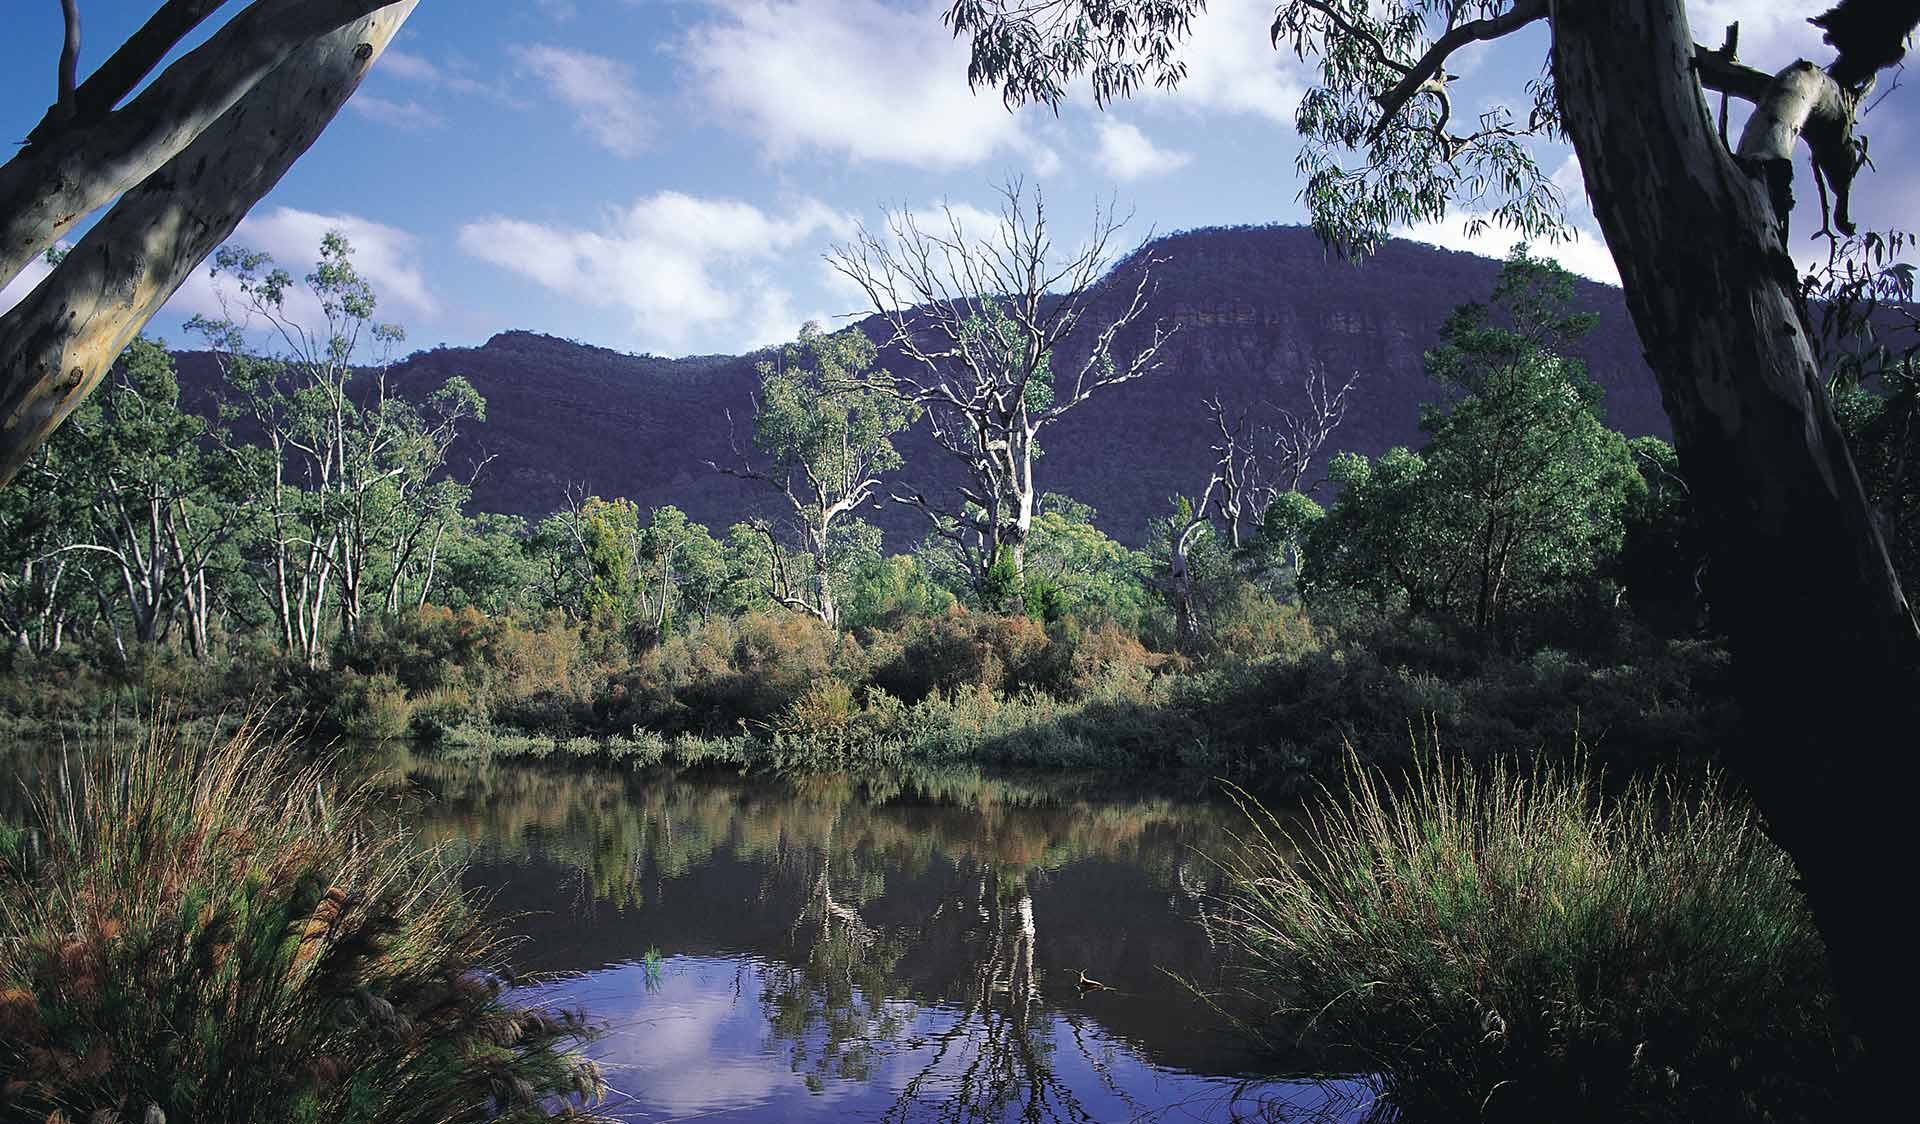 A lush wetland scene found in the central Grampians.